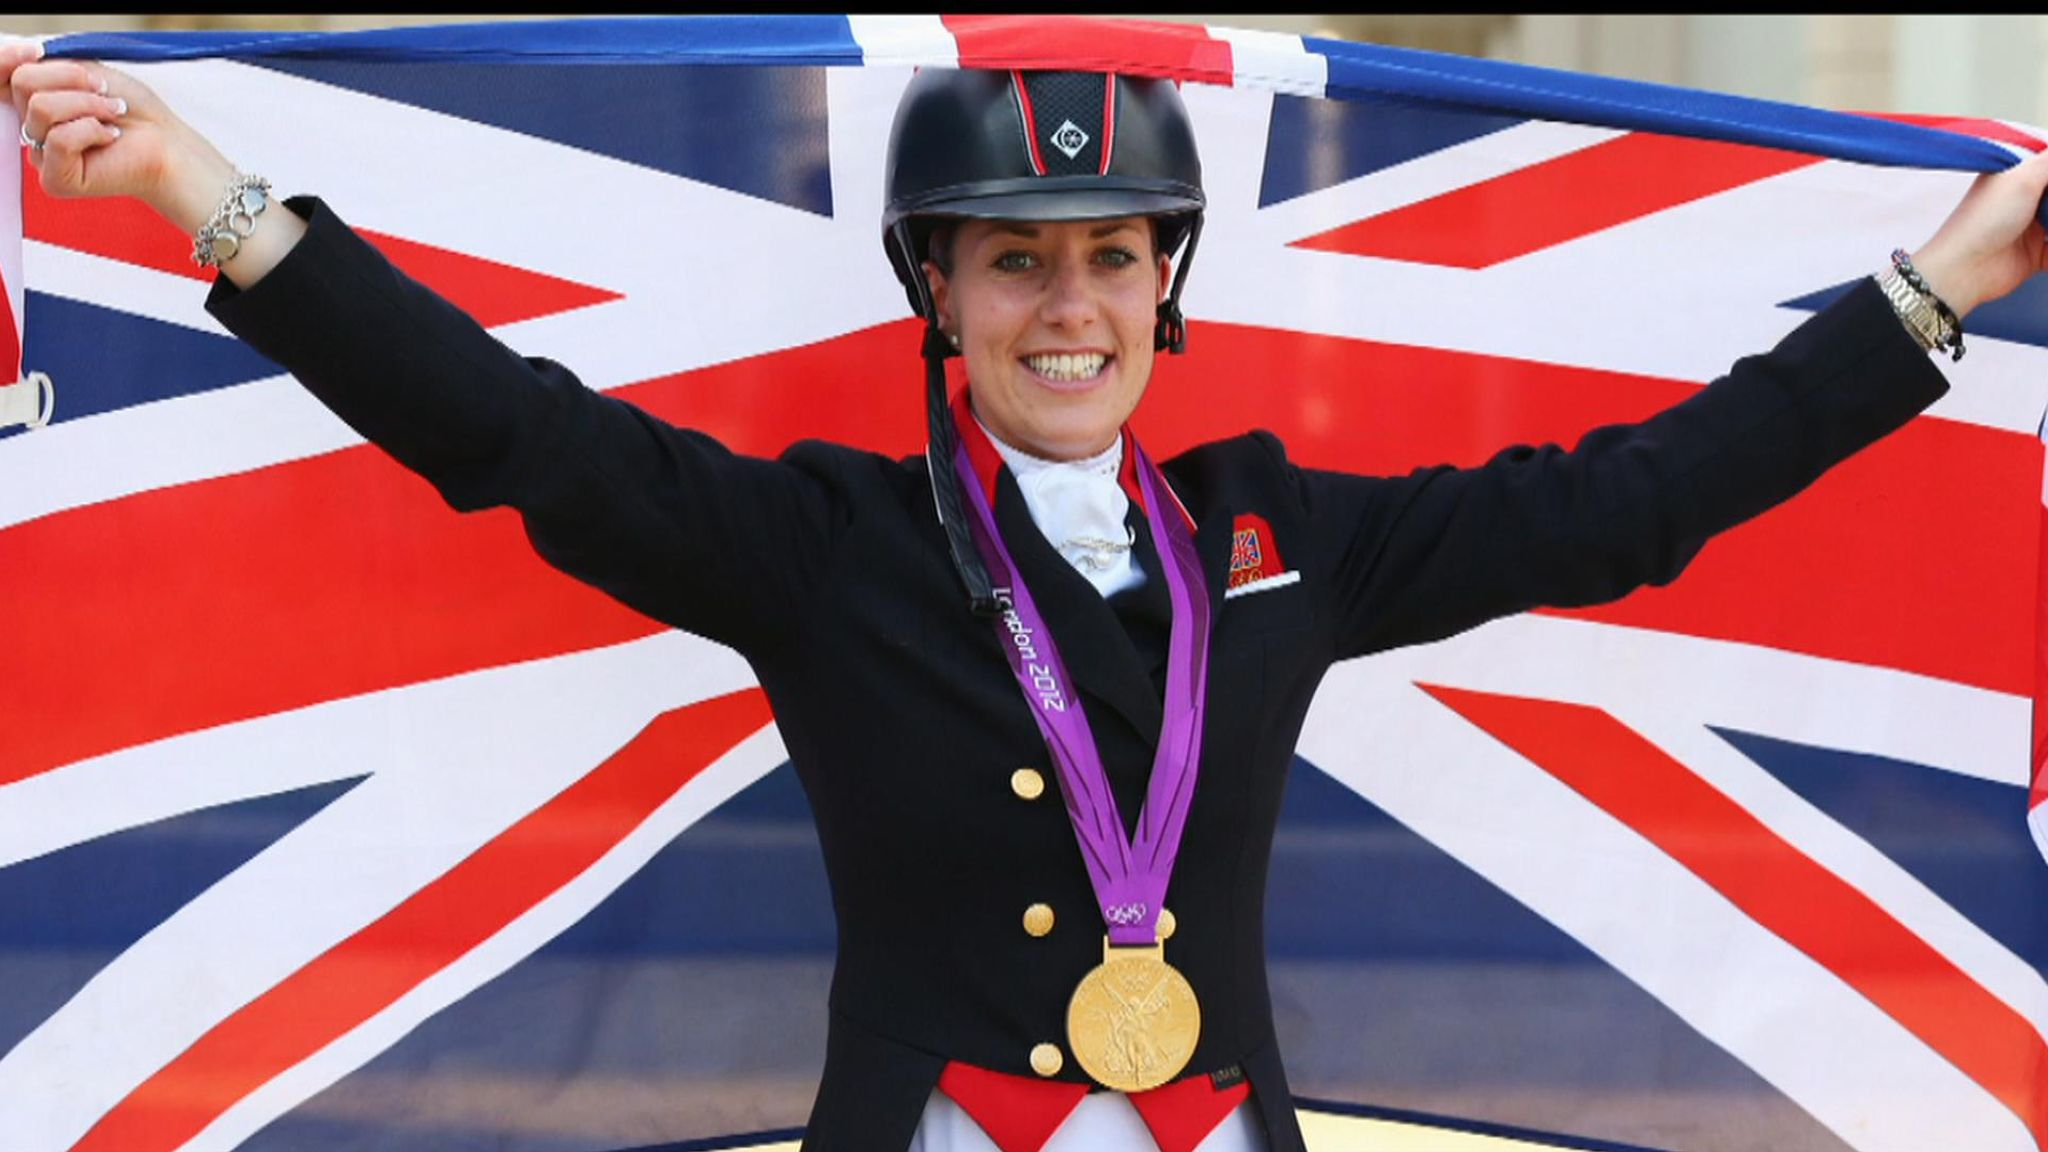 Charlotte Dujardin: The Girl on the Dancing Horse prepares for her third Olympics